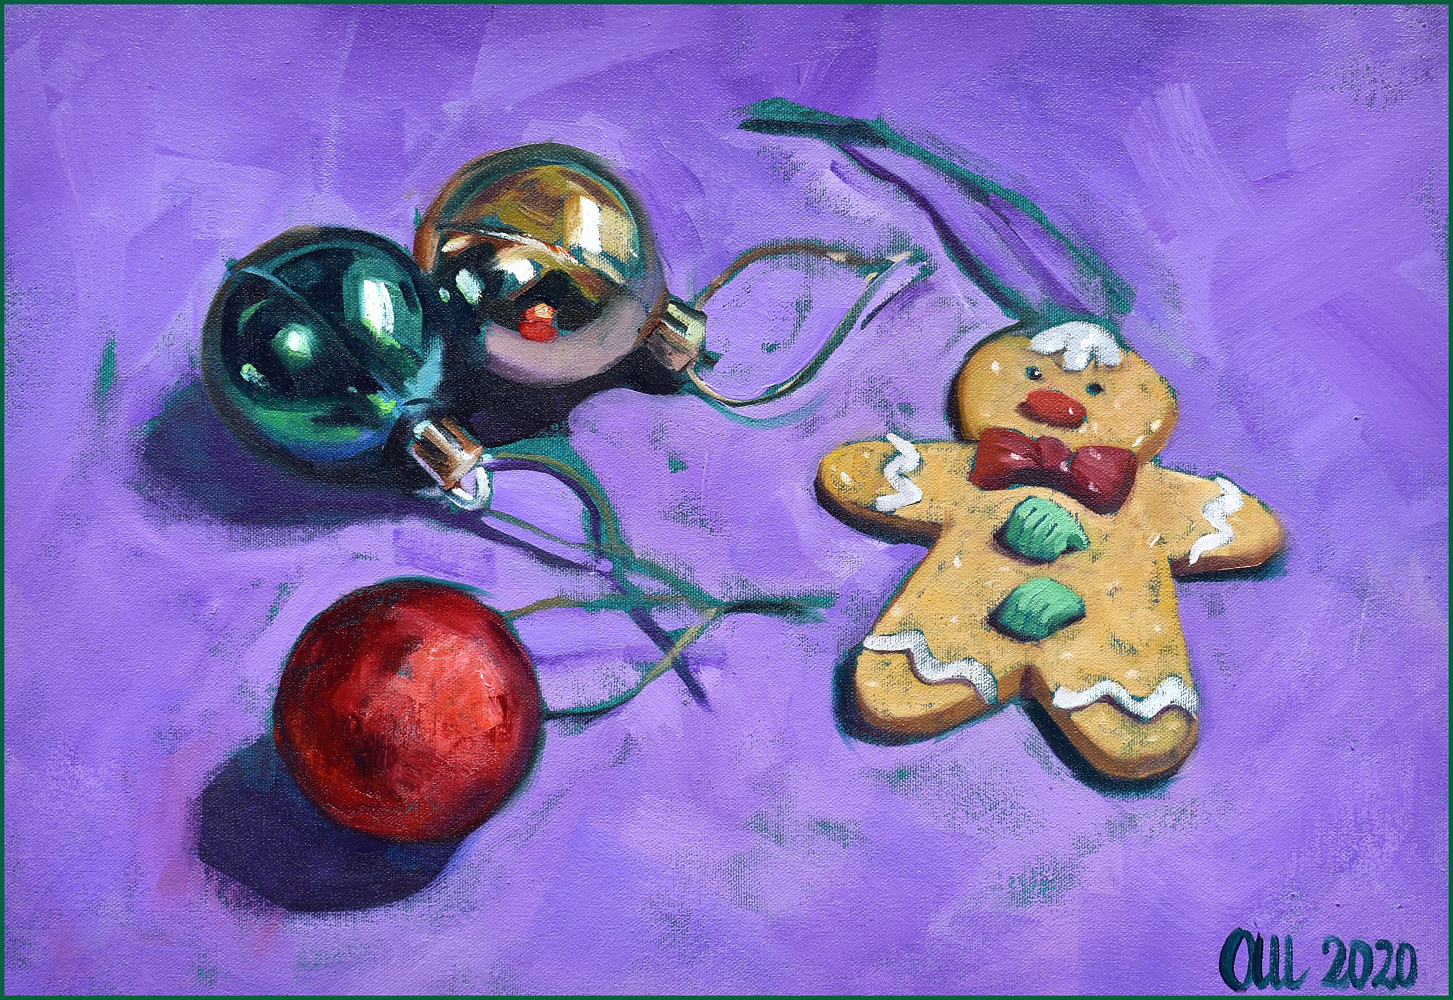 Oil painting gingerbread manframe by Angelo Mariano